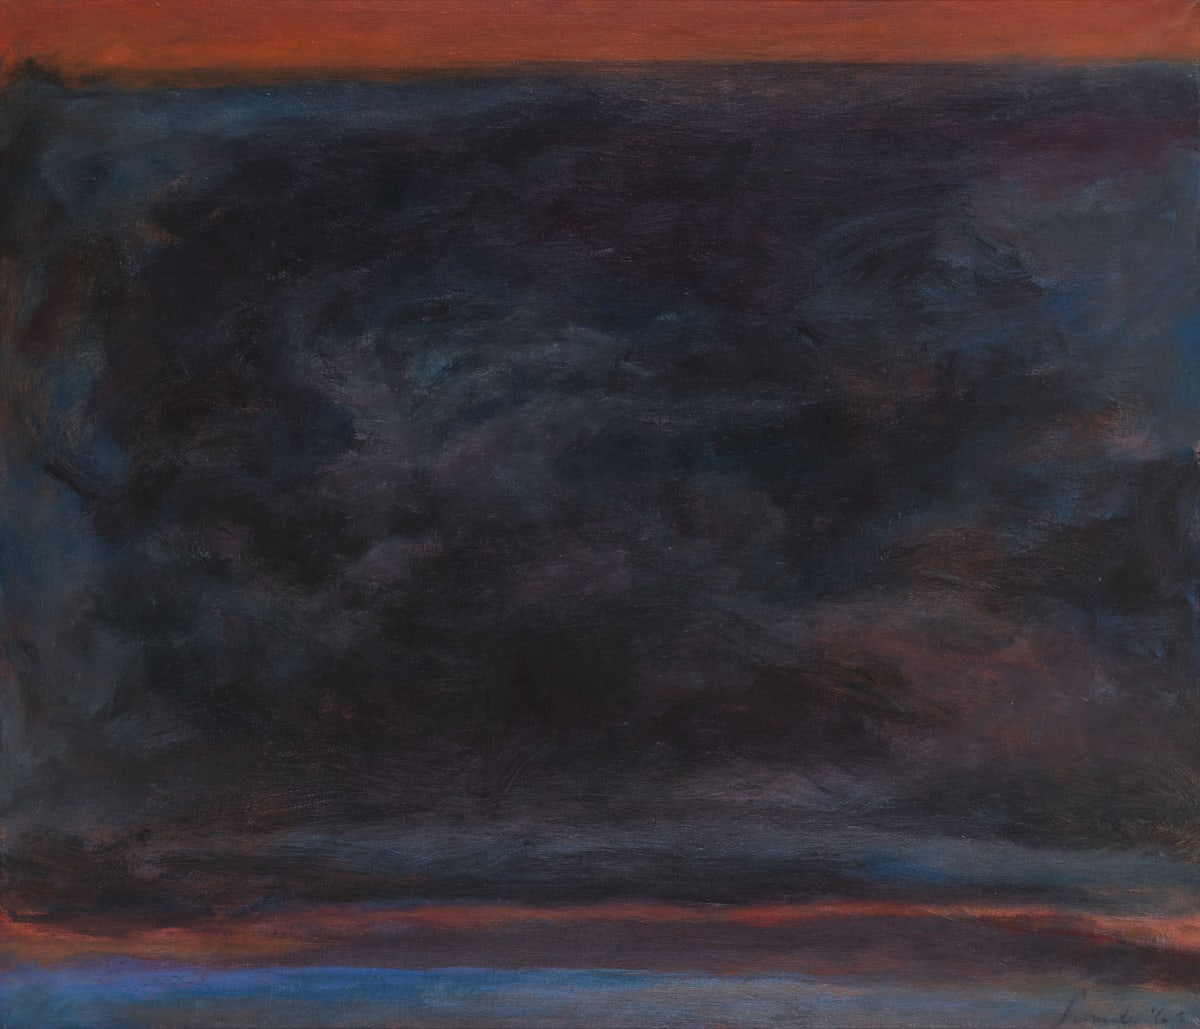 Jon Schueler, A Memory of the Sound of Sleat, 1963